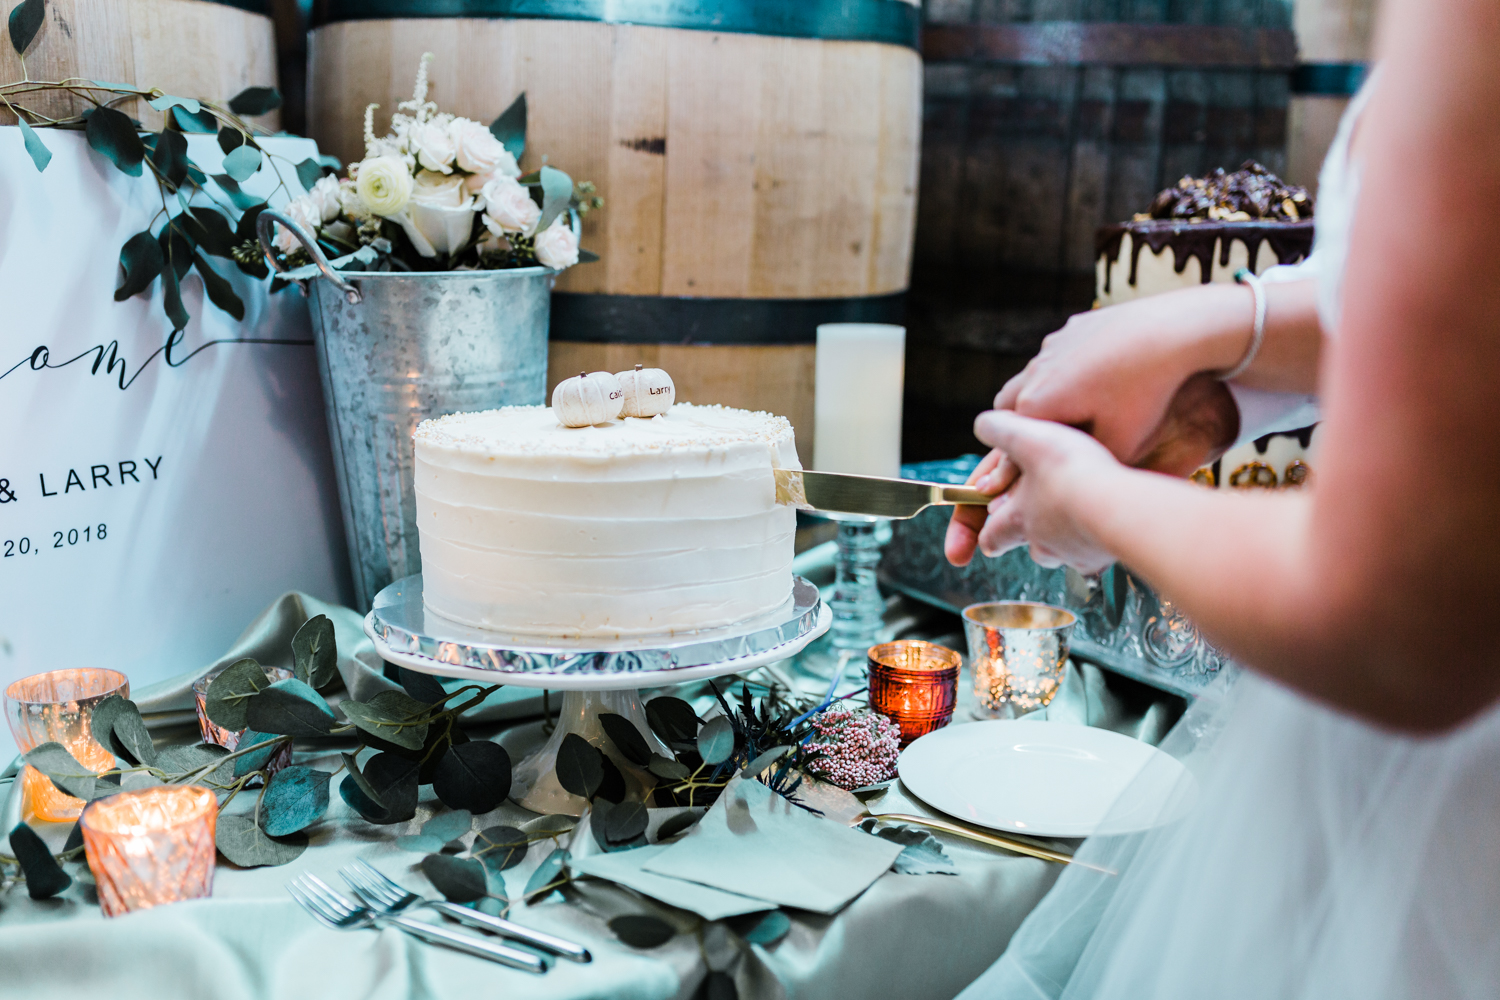 Bride and groom cut wedding cake at McClintock distillery in Frederick Maryland